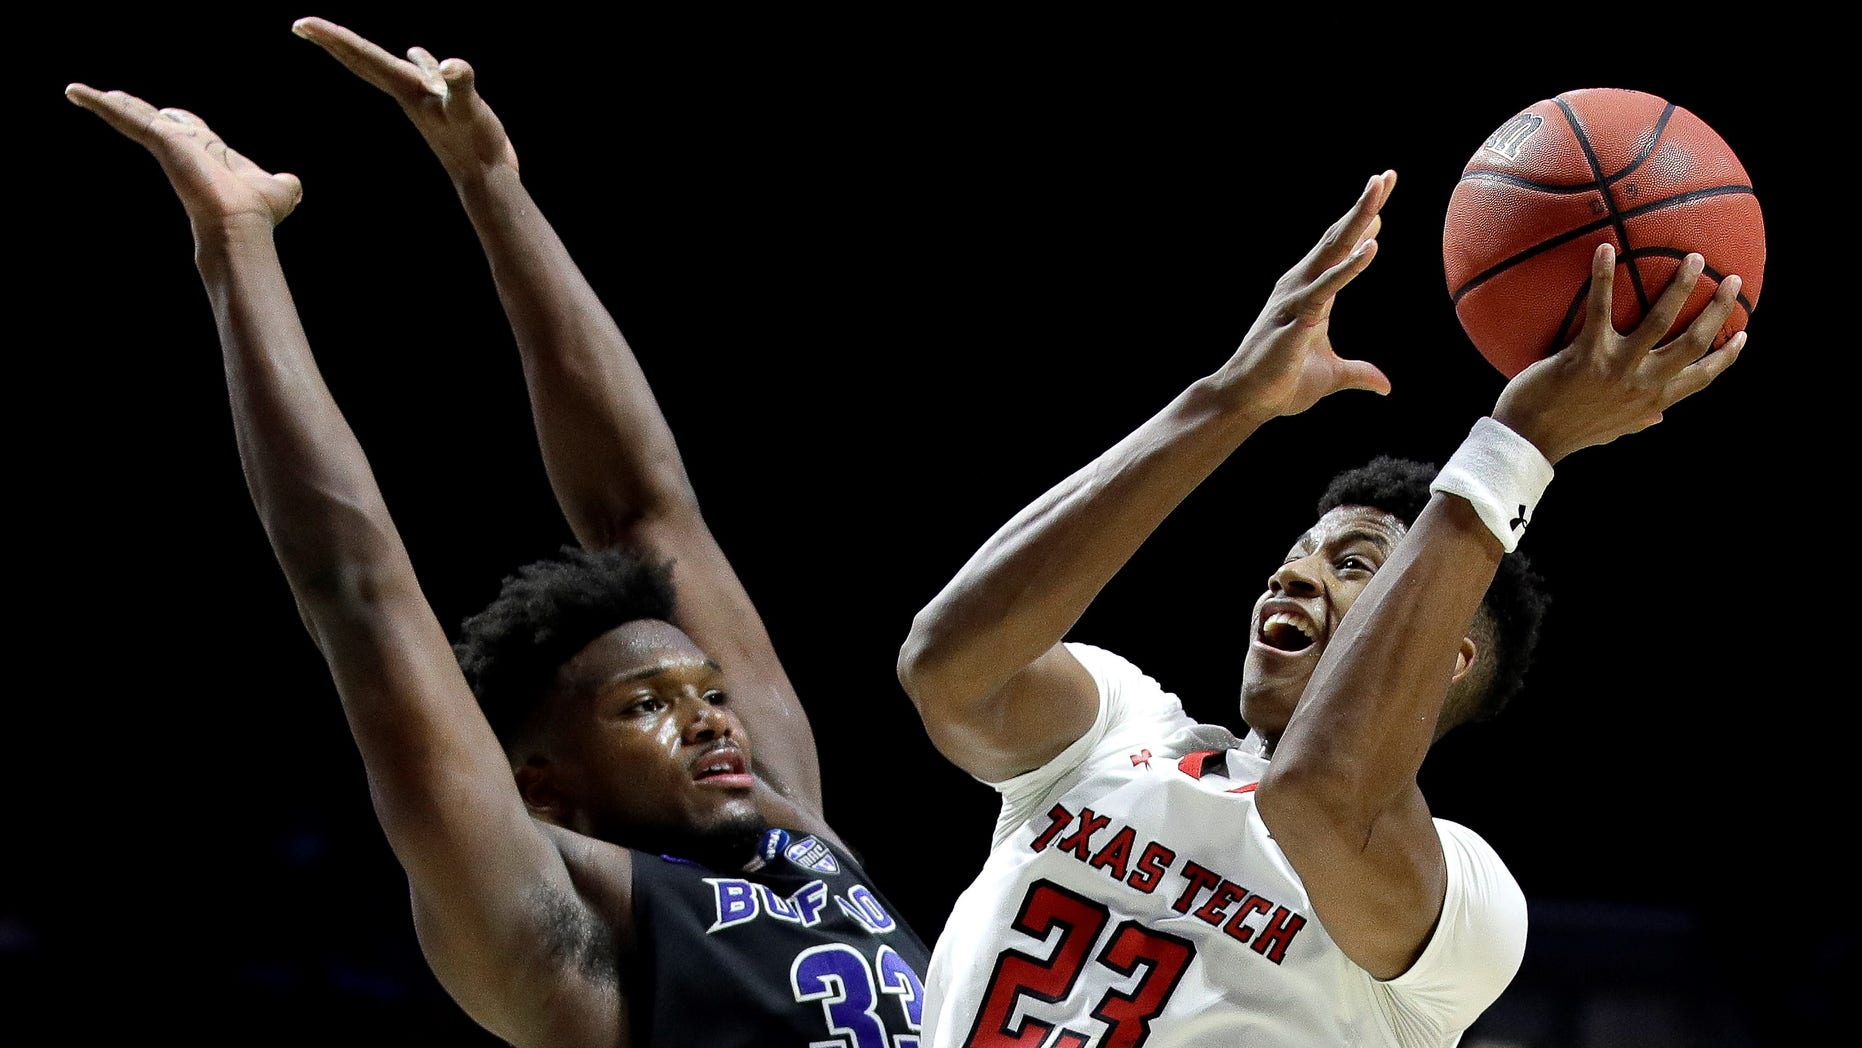 Texas Tech's Jarrett Culver (23) shoots past Buffalo's Nick Perkins (33) during a second half of a second-round men's college basketball diversion in a NCAA Tournament.